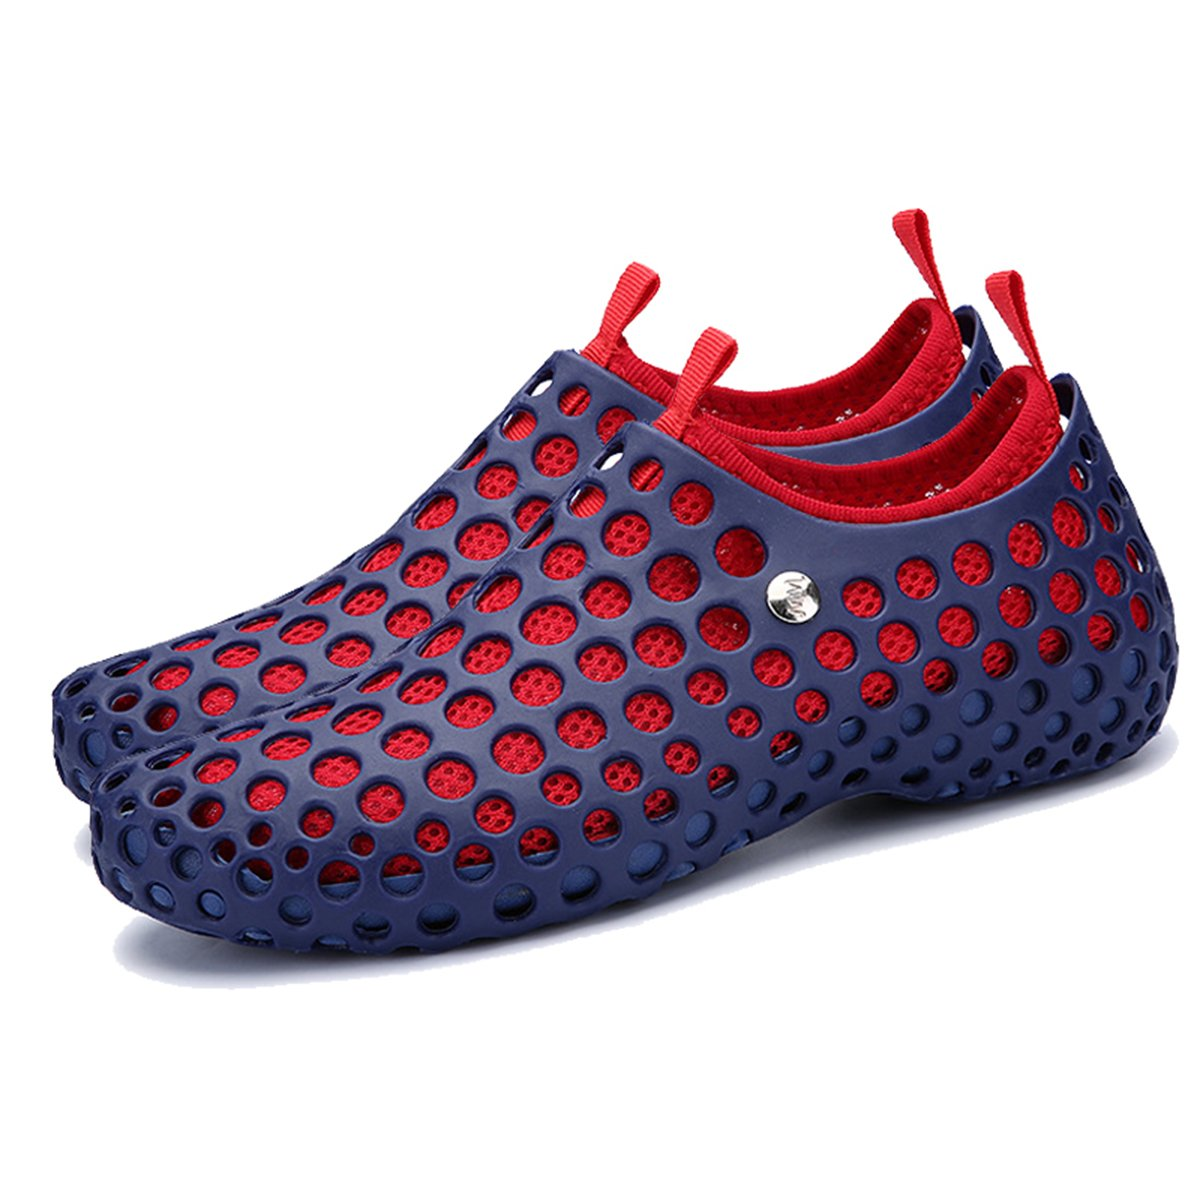 ba knife Men and Women Sandals Beach Shoes Lightweight Athletic Quick Drying Mesh Aqua Slip-on Shoes B075K6KMCS 10 B(M)US Women/ 8.5 D(M)US Men=EU/FR 41|Blue and Red